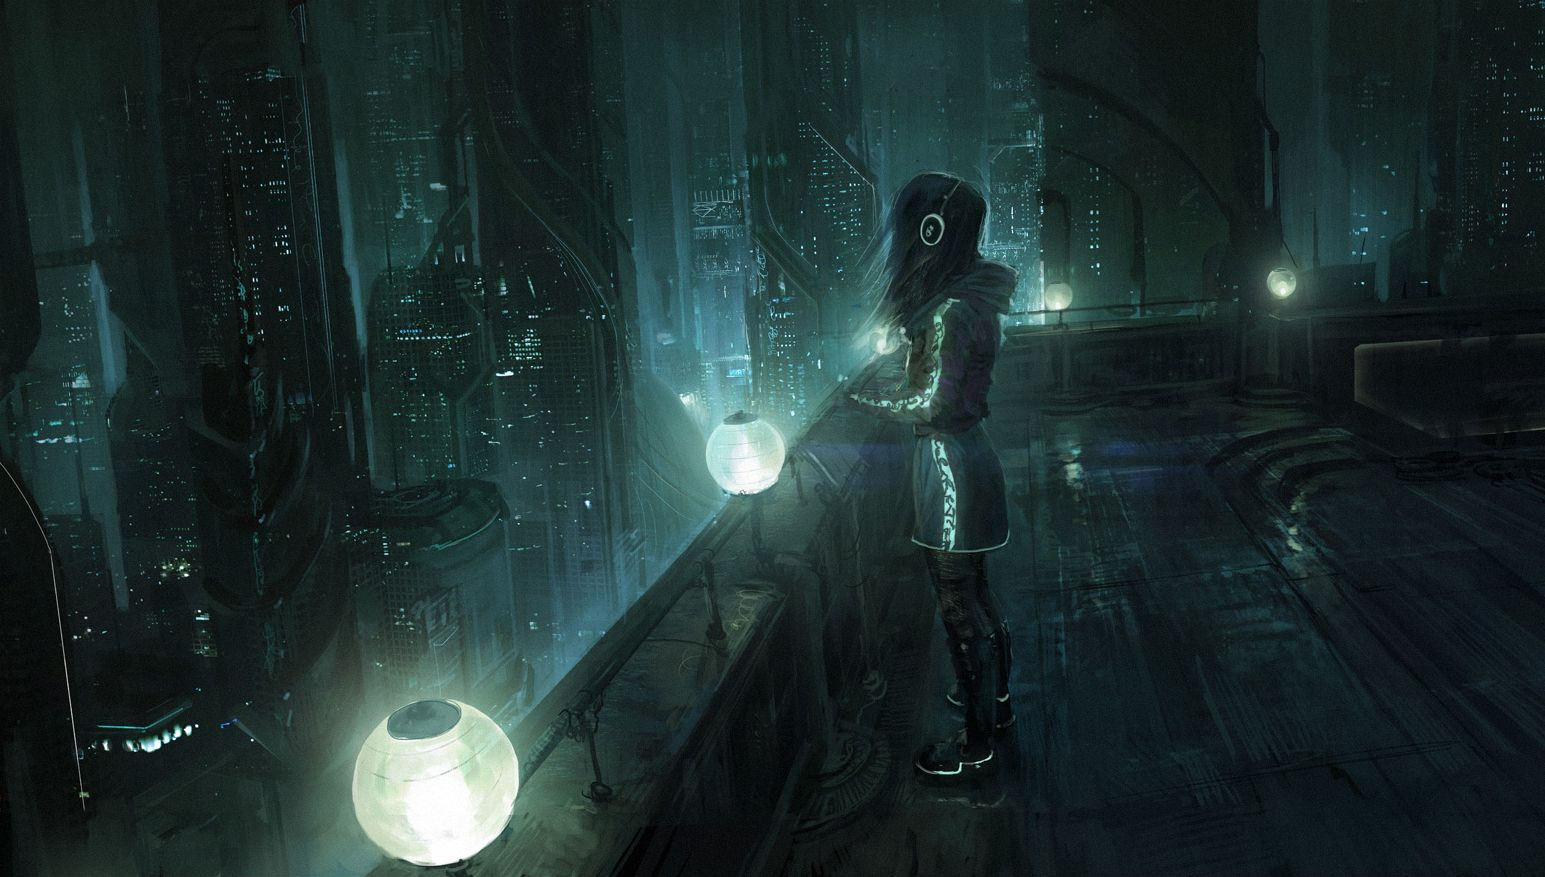 1545x877 - Sci Fi City Wallpapers 2